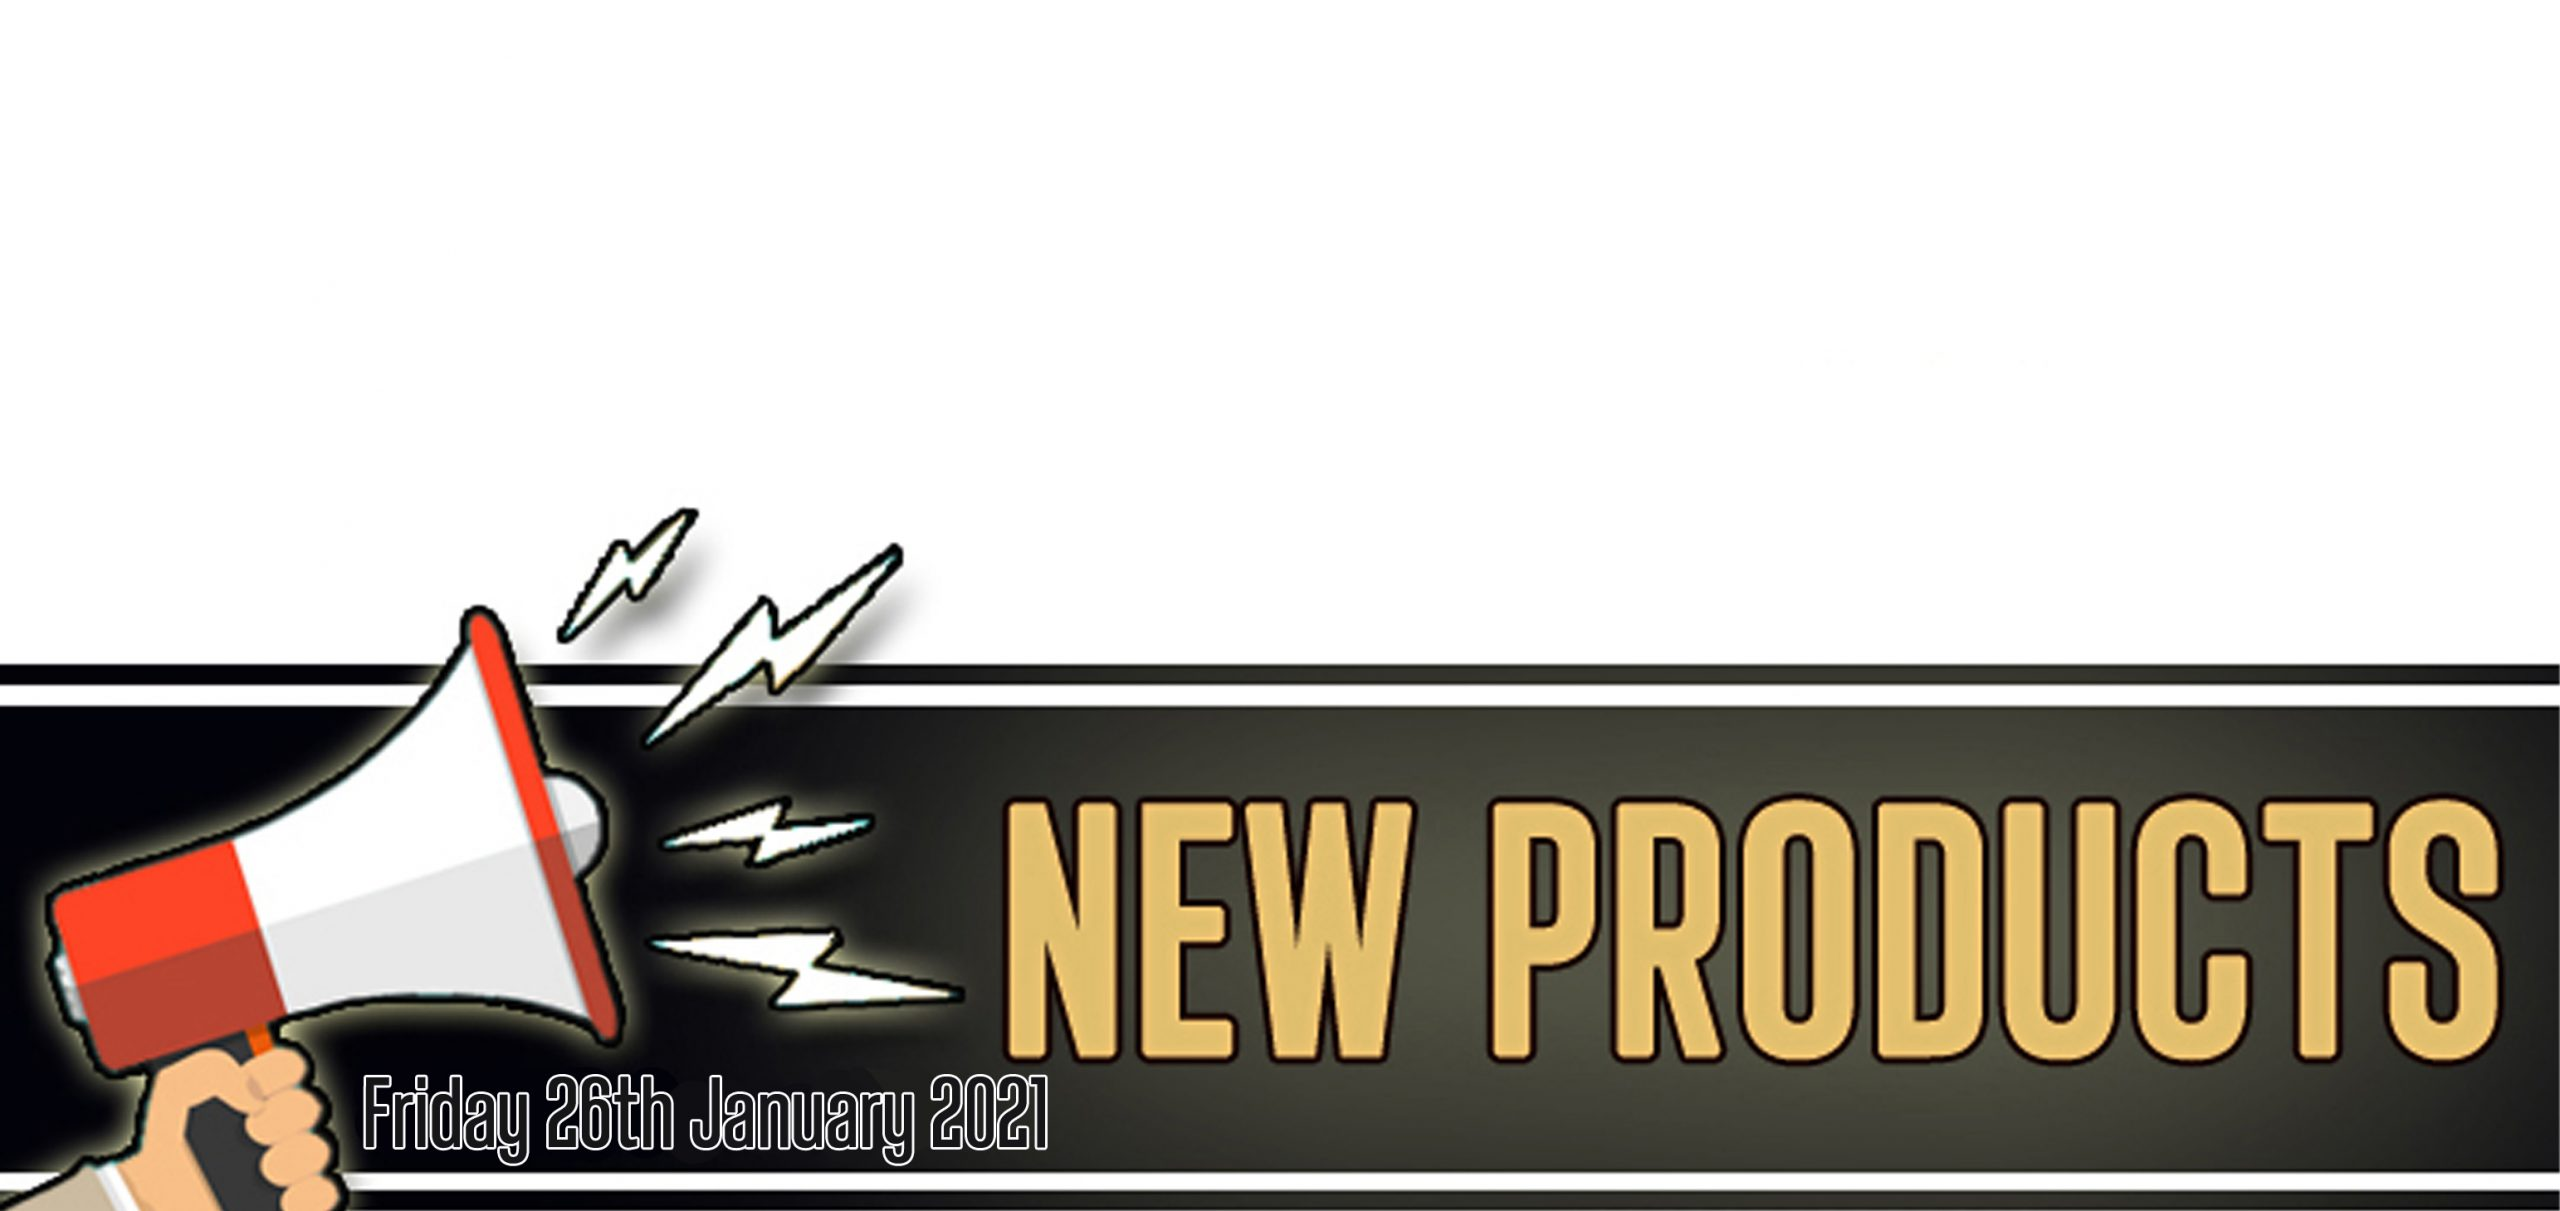 New Products For February 26th 2021